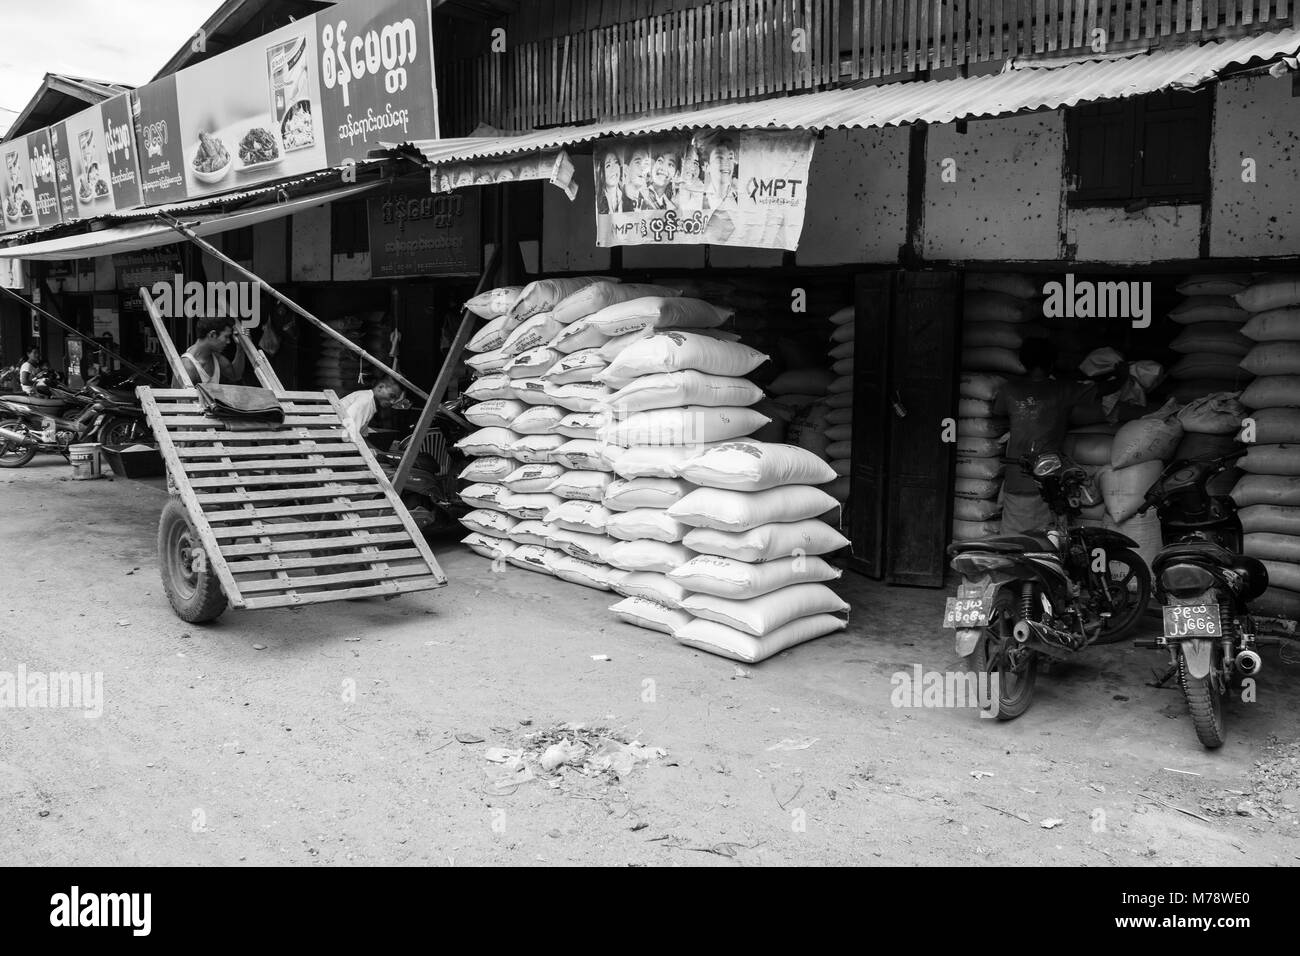 A vendor at Nyaung U market selling sacks of rice or flour. Burmese man with makeshift wooden cart with car tires - Stock Image